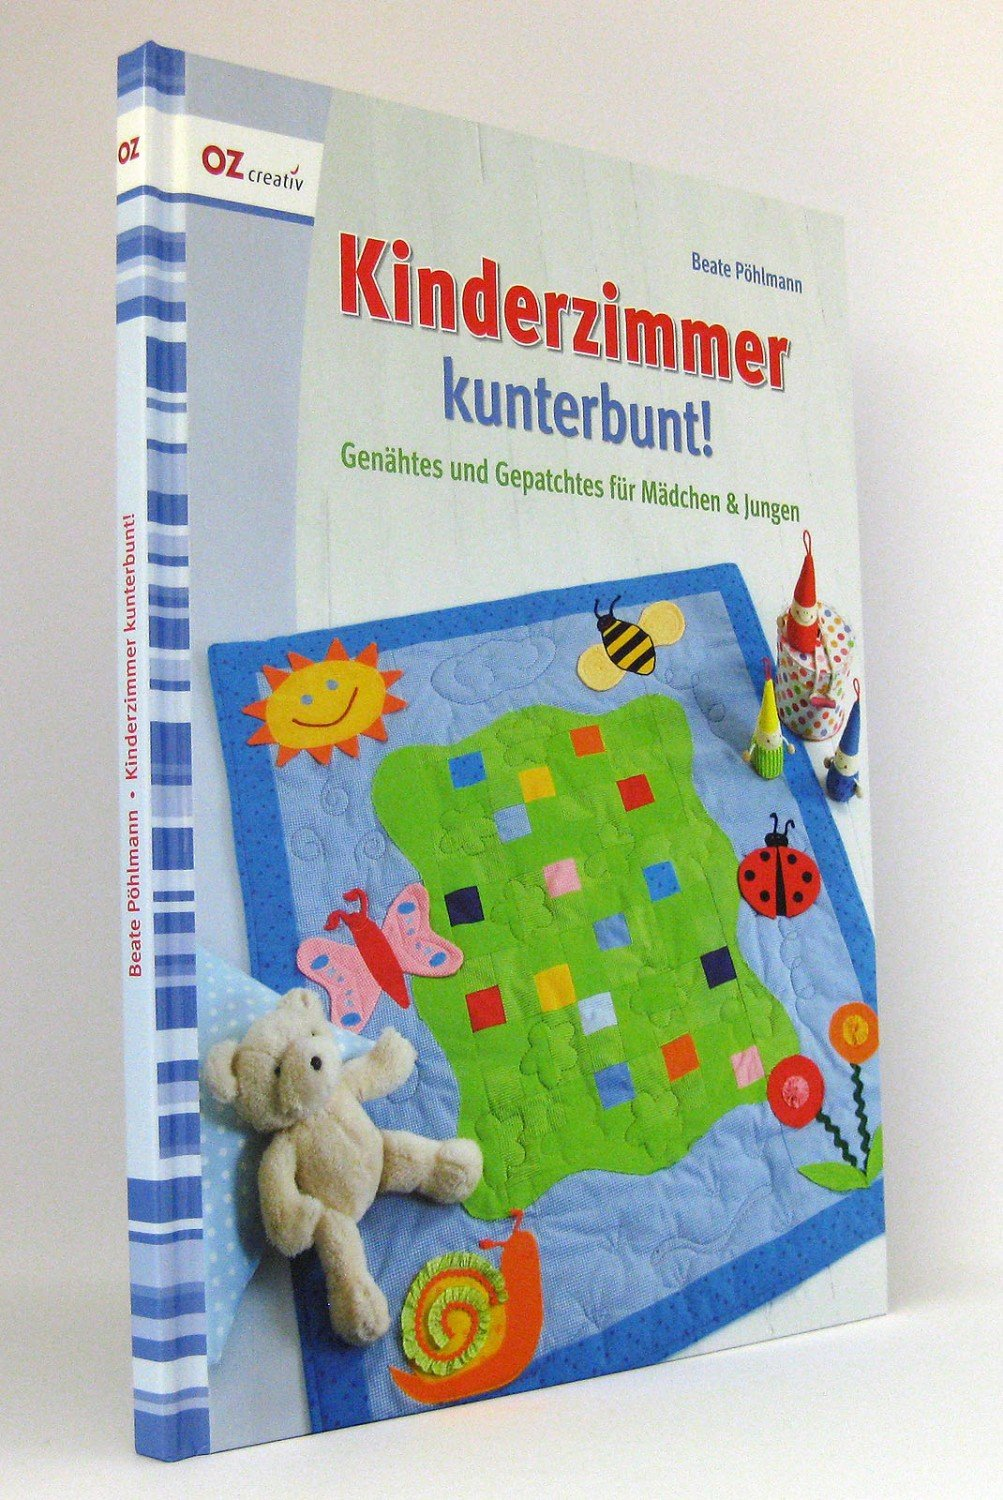 isbn 9783841060112 kinderzimmer kunterbunt gen htes. Black Bedroom Furniture Sets. Home Design Ideas